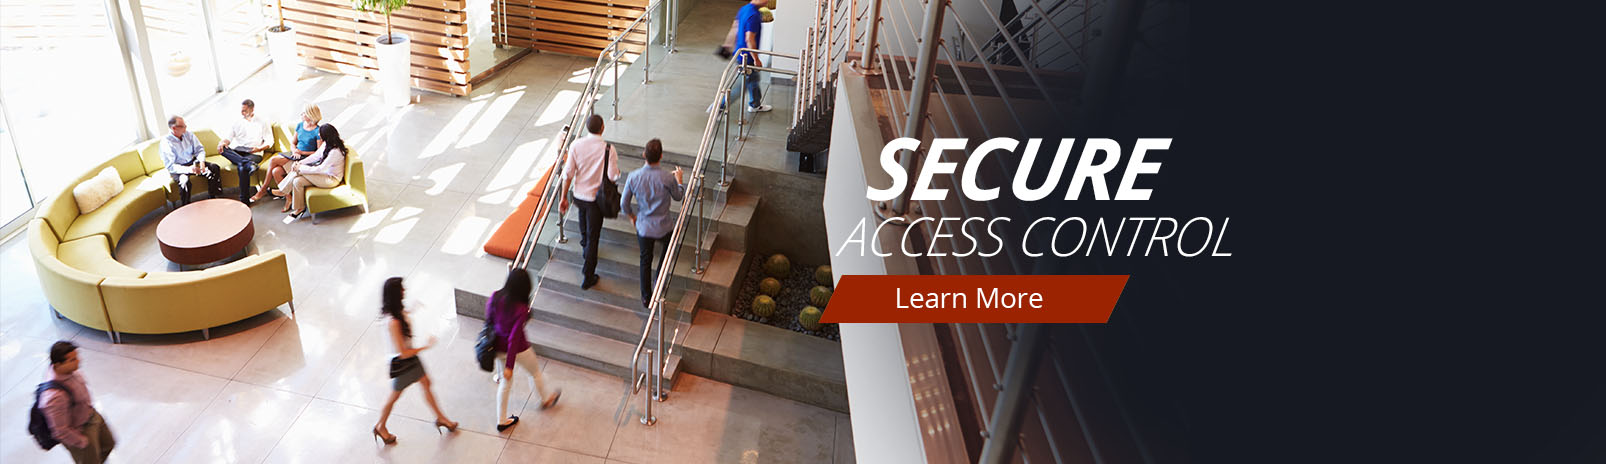 Secure Access Control